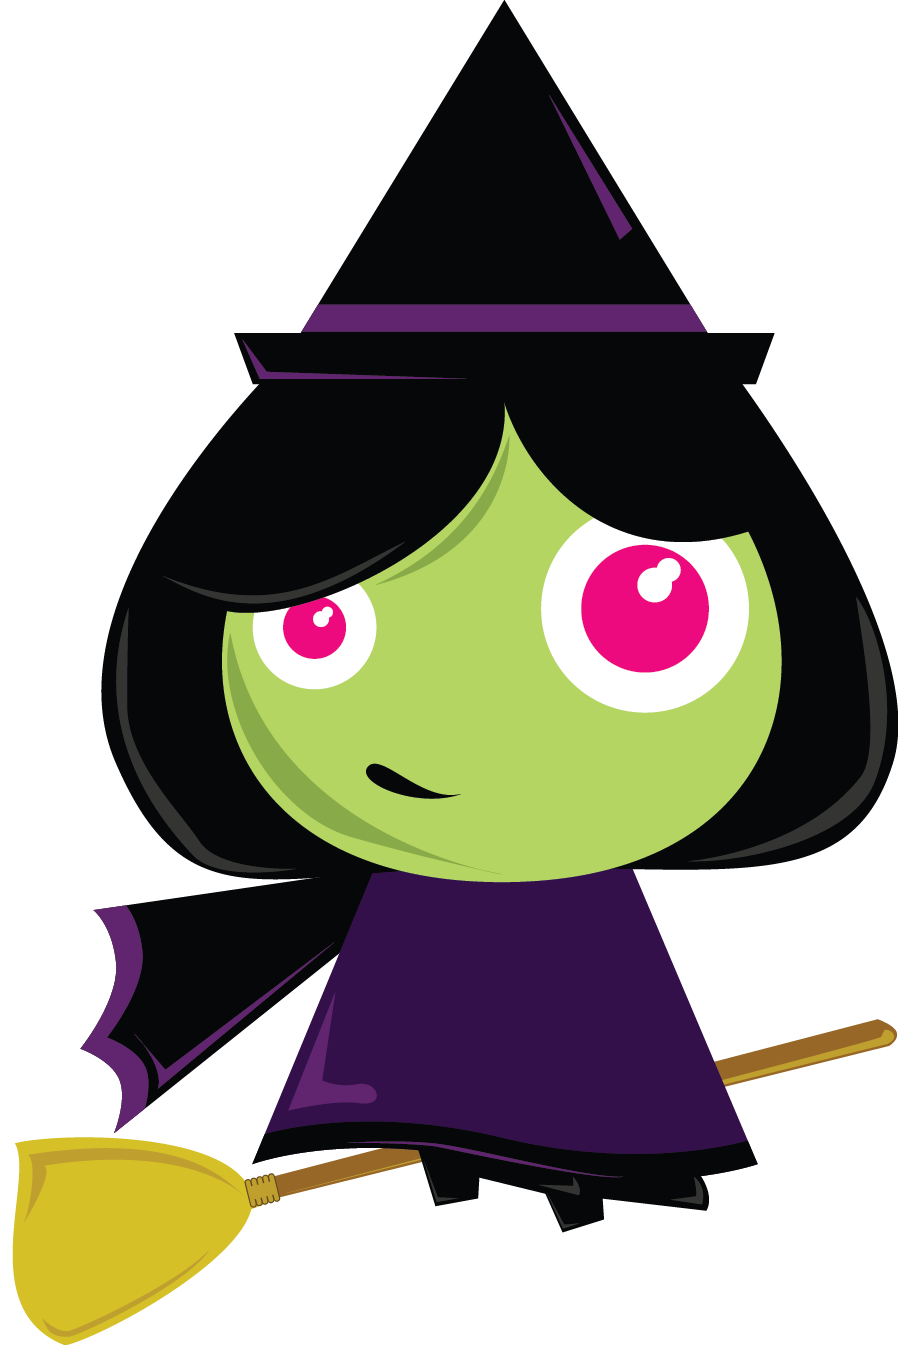 Halloween witch clipart images clipart free download 28+ Collection of Cute Halloween Witch Clipart | High quality, free ... clipart free download